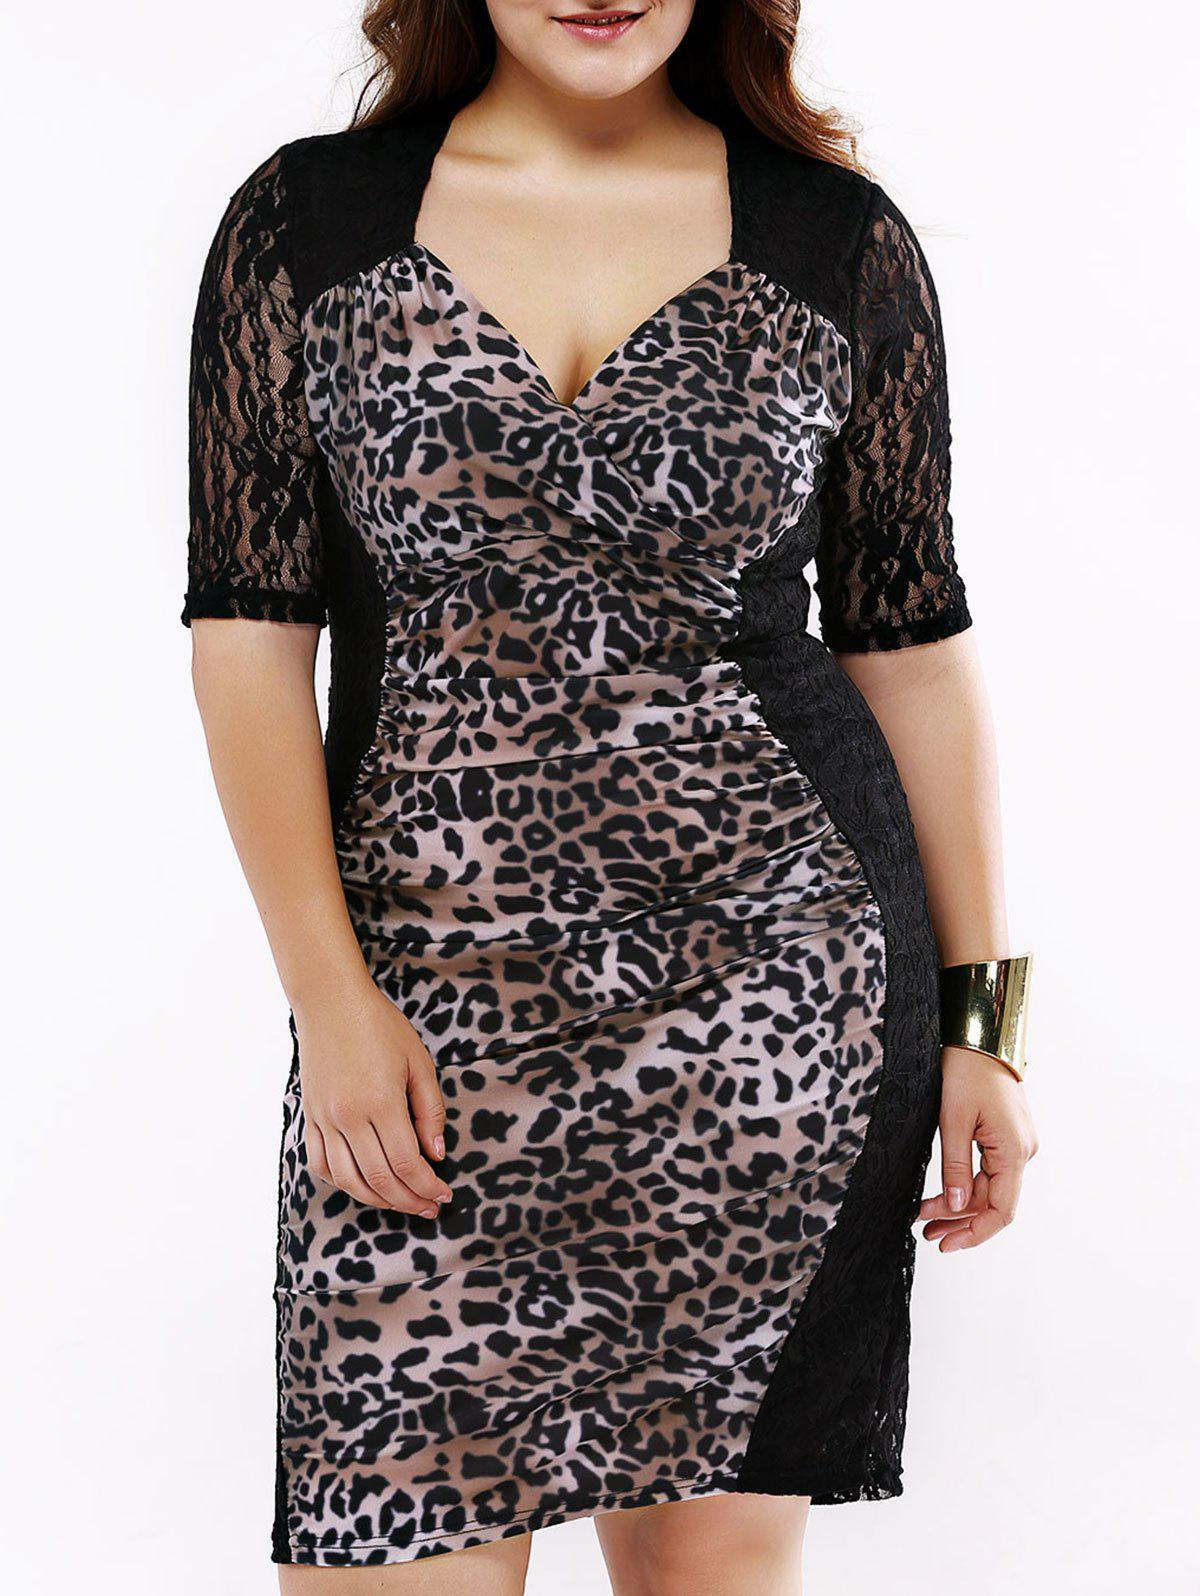 Alluring Plunging Neck Lace leopard Print Dress For Women